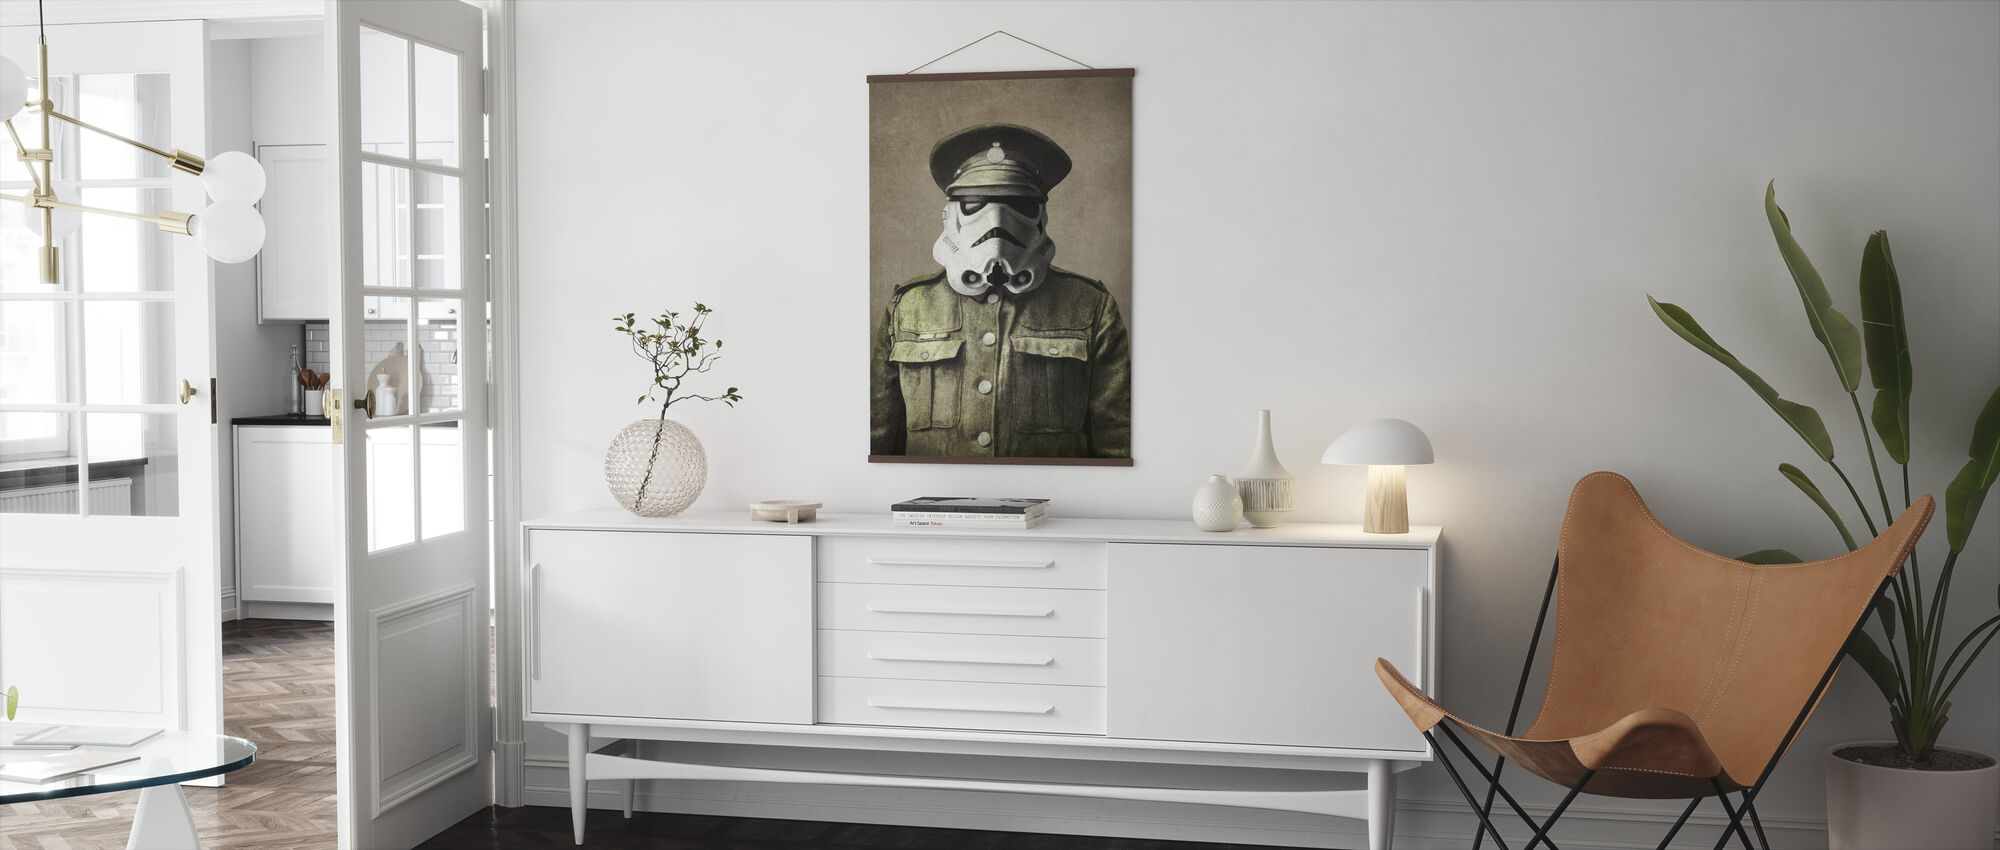 Victorian Wars Sgt. Stormley - Poster - Living Room